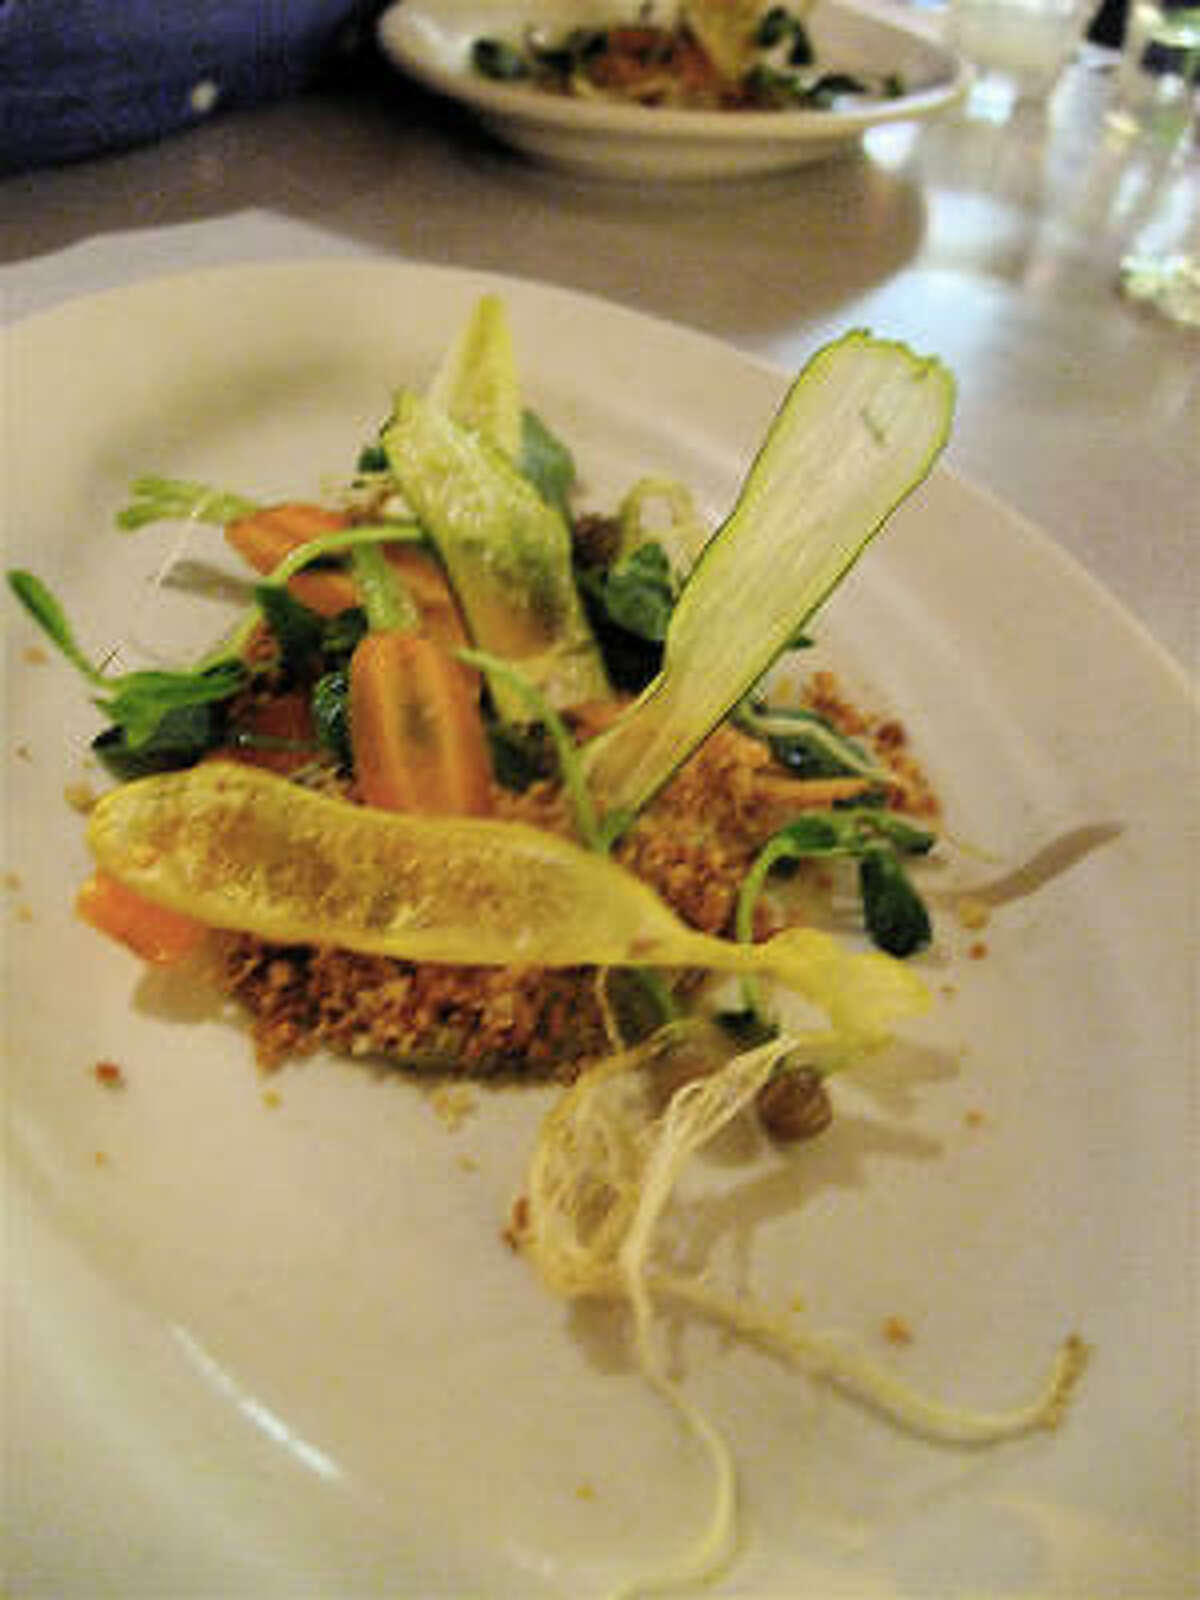 At the 10.10.10 dinner, an abstract garden was a neo-salad course of fresh and dried vegetables with toasted-crumb